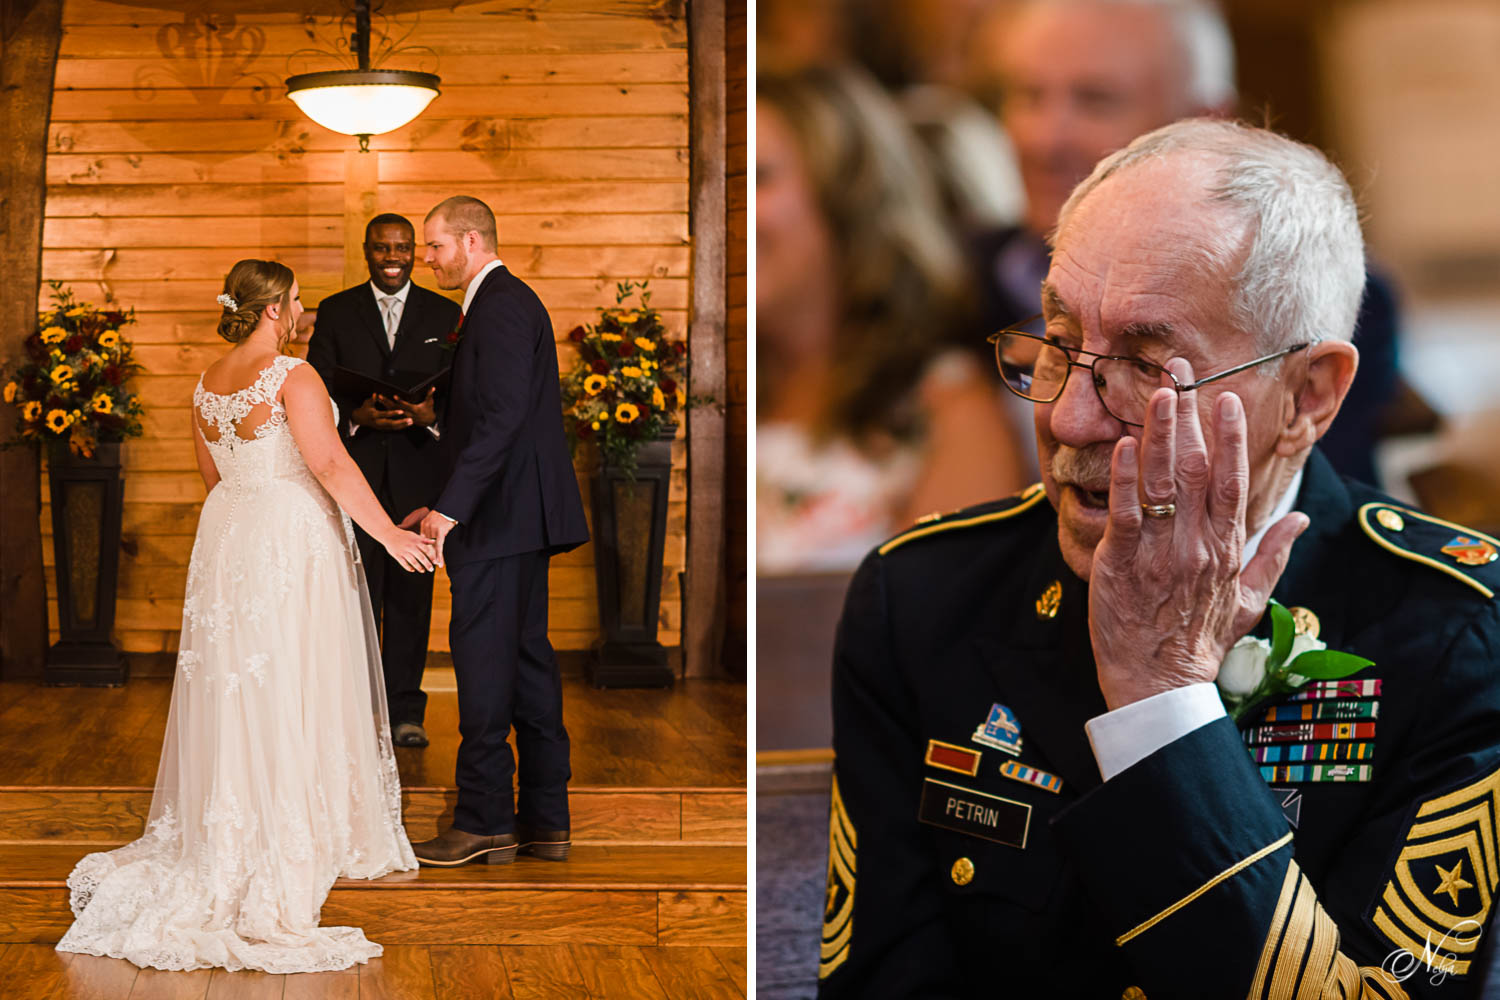 wedding ceremony. And grampa in military dress blues wiping a tear from his eye.